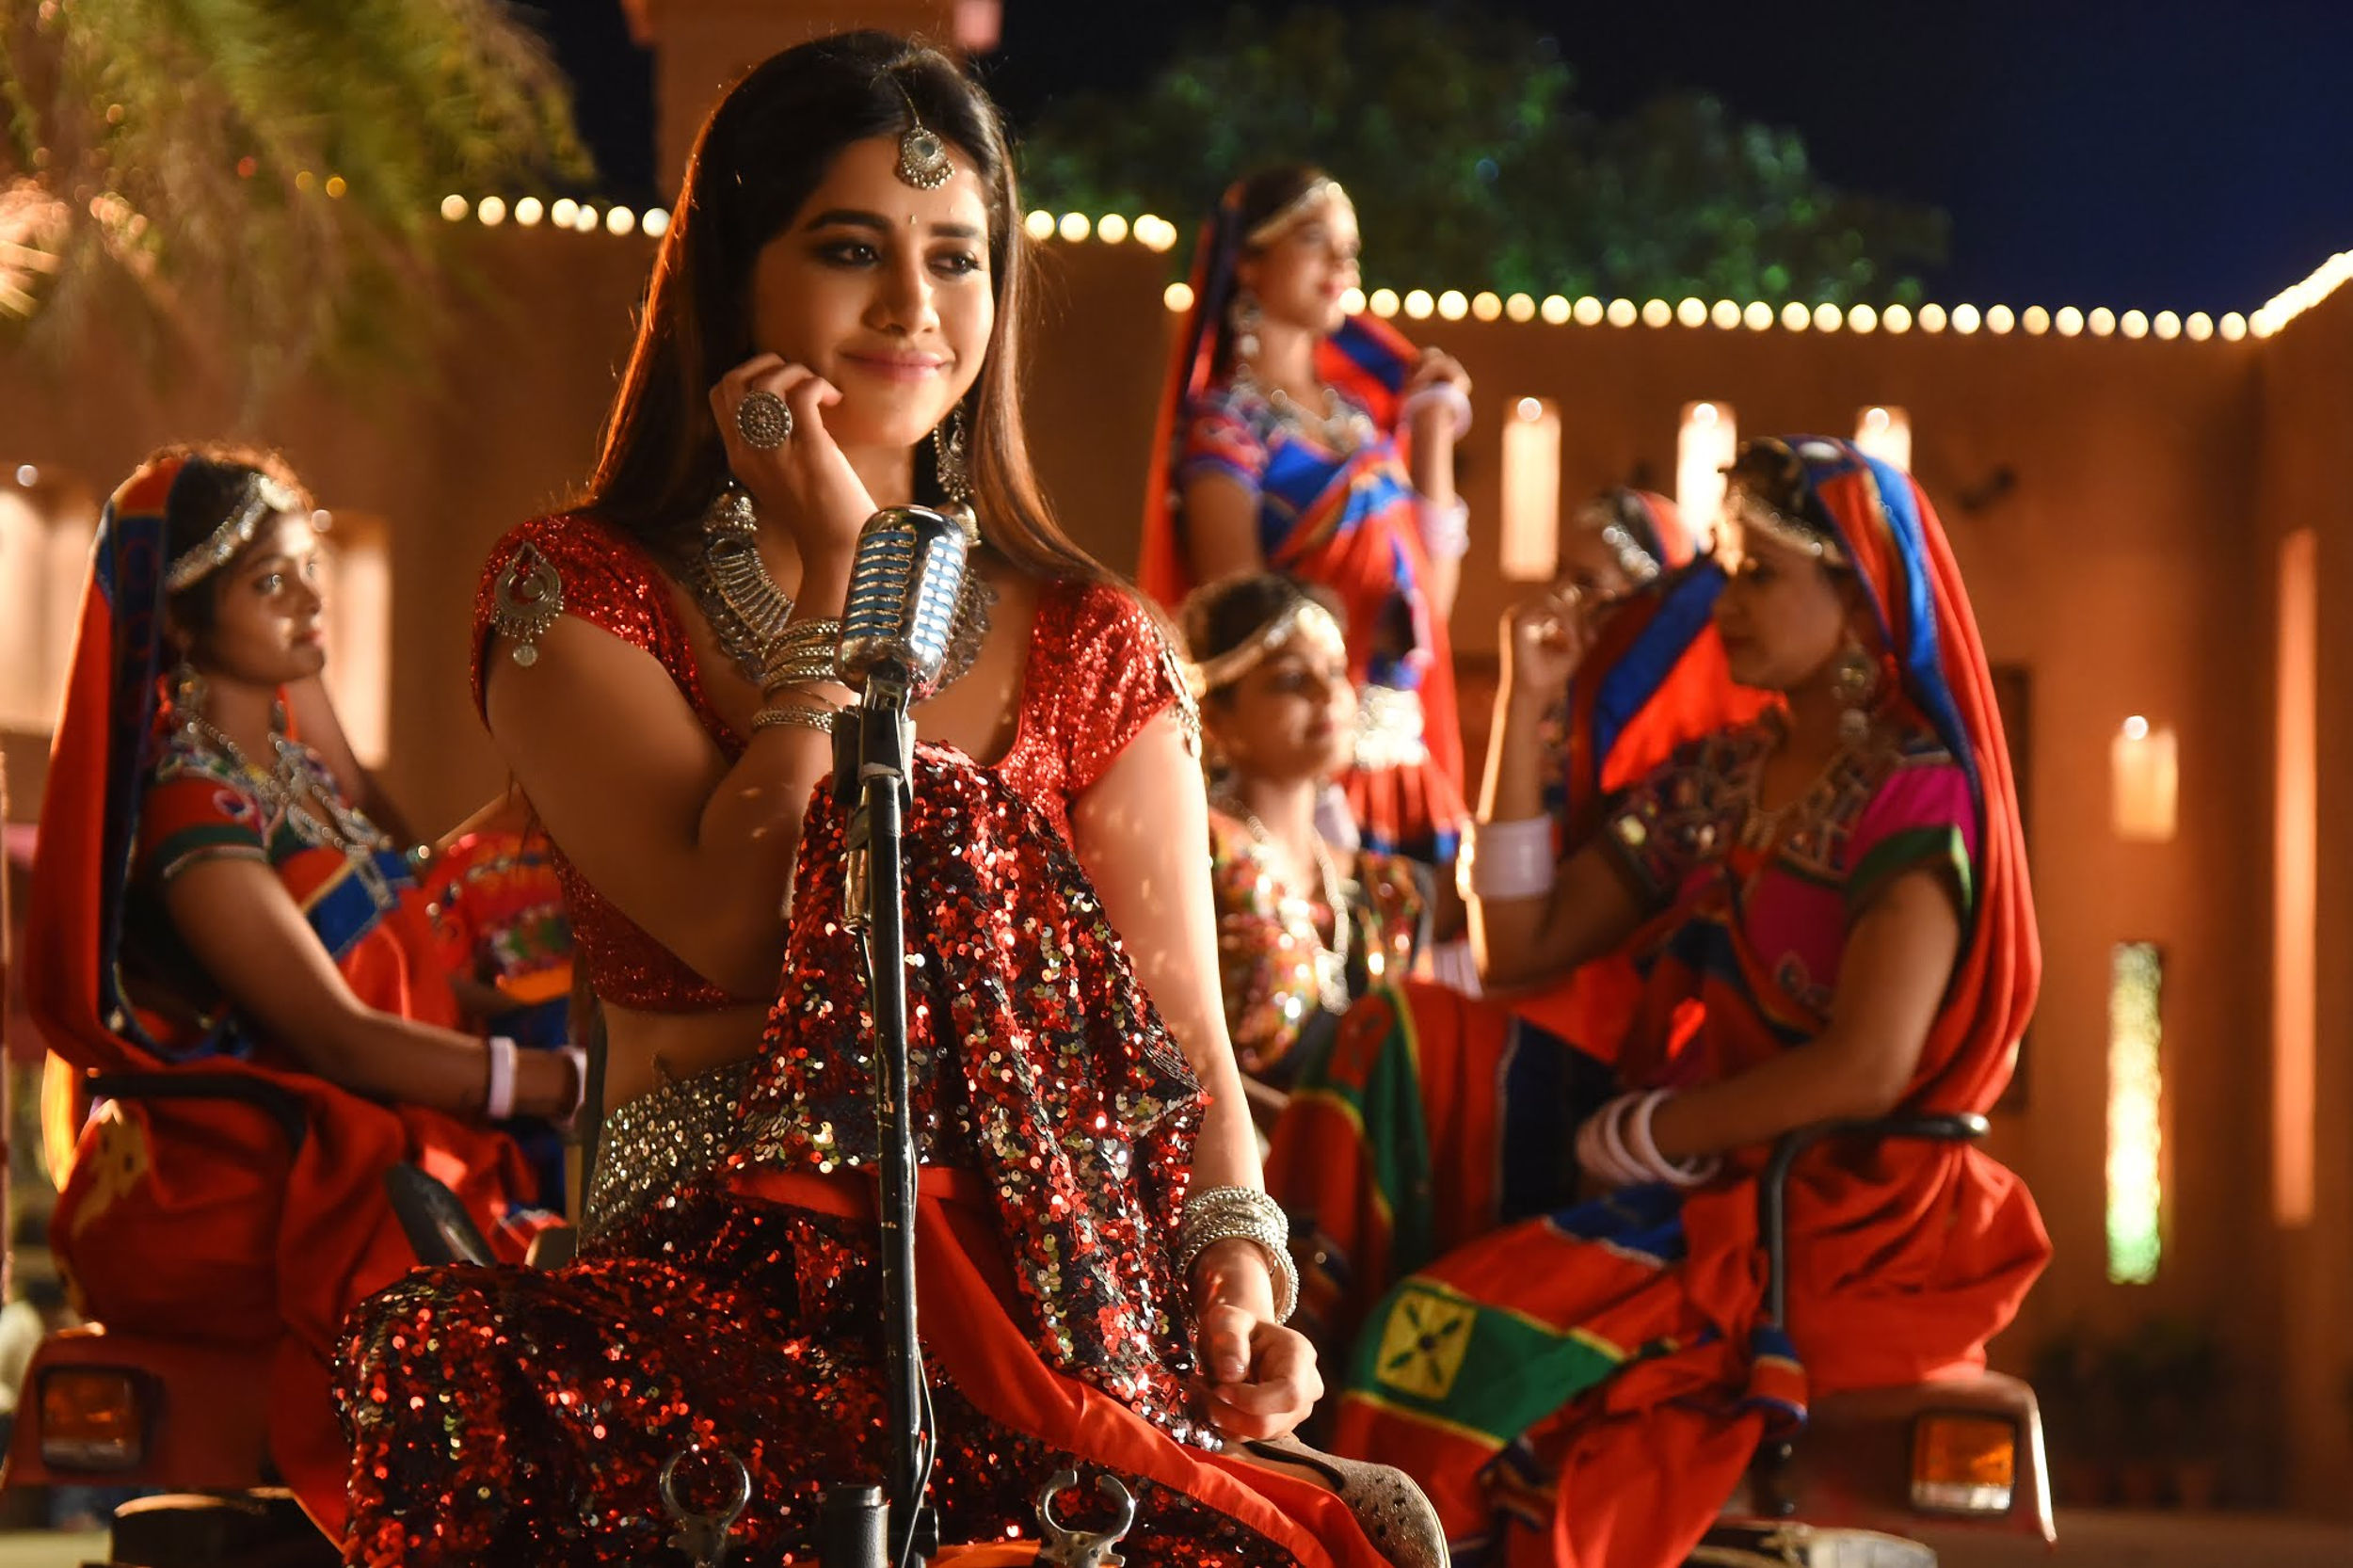 Actress Nabha Natesh from 'iSmart Shankar' 'Dimaak Kharaab' song shoot